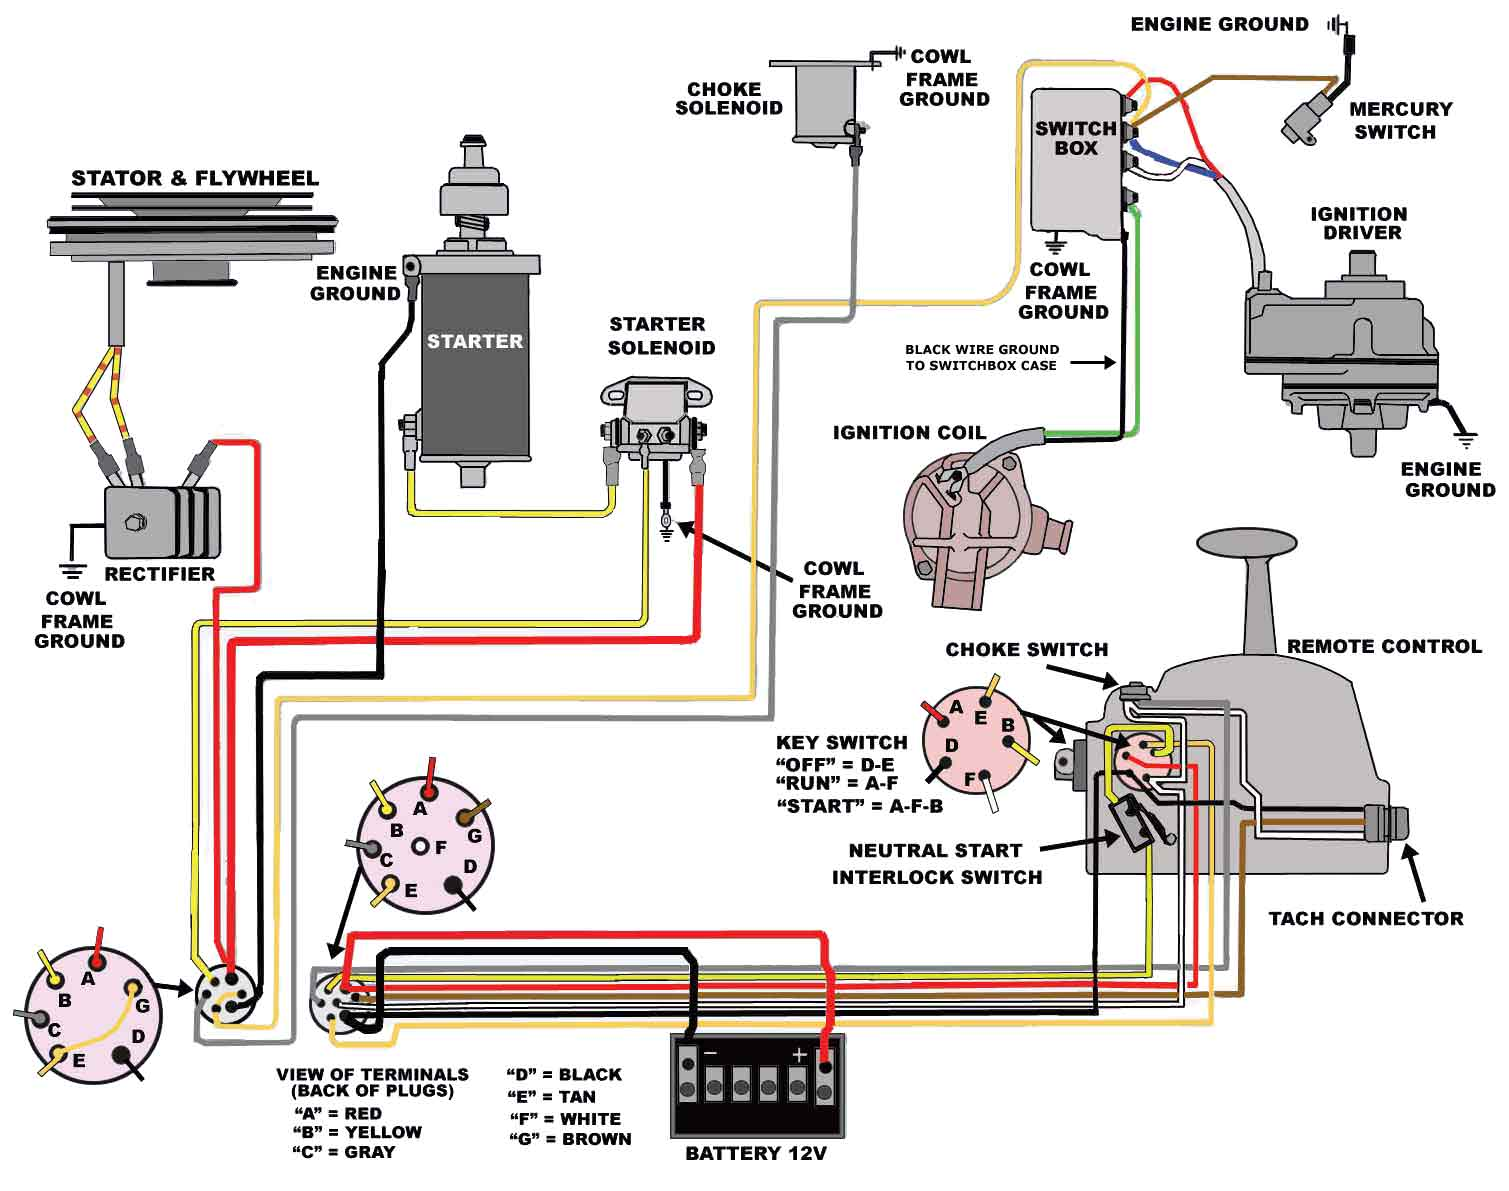 Mercury 1150 Wiring Diagram | Schematic Diagram on kohler ignition wiring, mercury outboard gauges wiring, mercruiser ignition wiring, omc ignition wiring, johnson ignition wiring, mercury wiring color code, mercury wiring harness diagram, mercury outboard warning wiring, mercury outboard control wiring, mercury 115 outboard wiring harness, boat ignition wiring, mercury outboard start switch wiring, mercury outboard alternator wiring, mercury optimax ignition wiring, ford ignition wiring, mercury outboard tach wiring, mercury 115 wiring schematic, yamaha ignition wiring, mercury 1150 wiring diagram, chrysler outboard choke wiring,